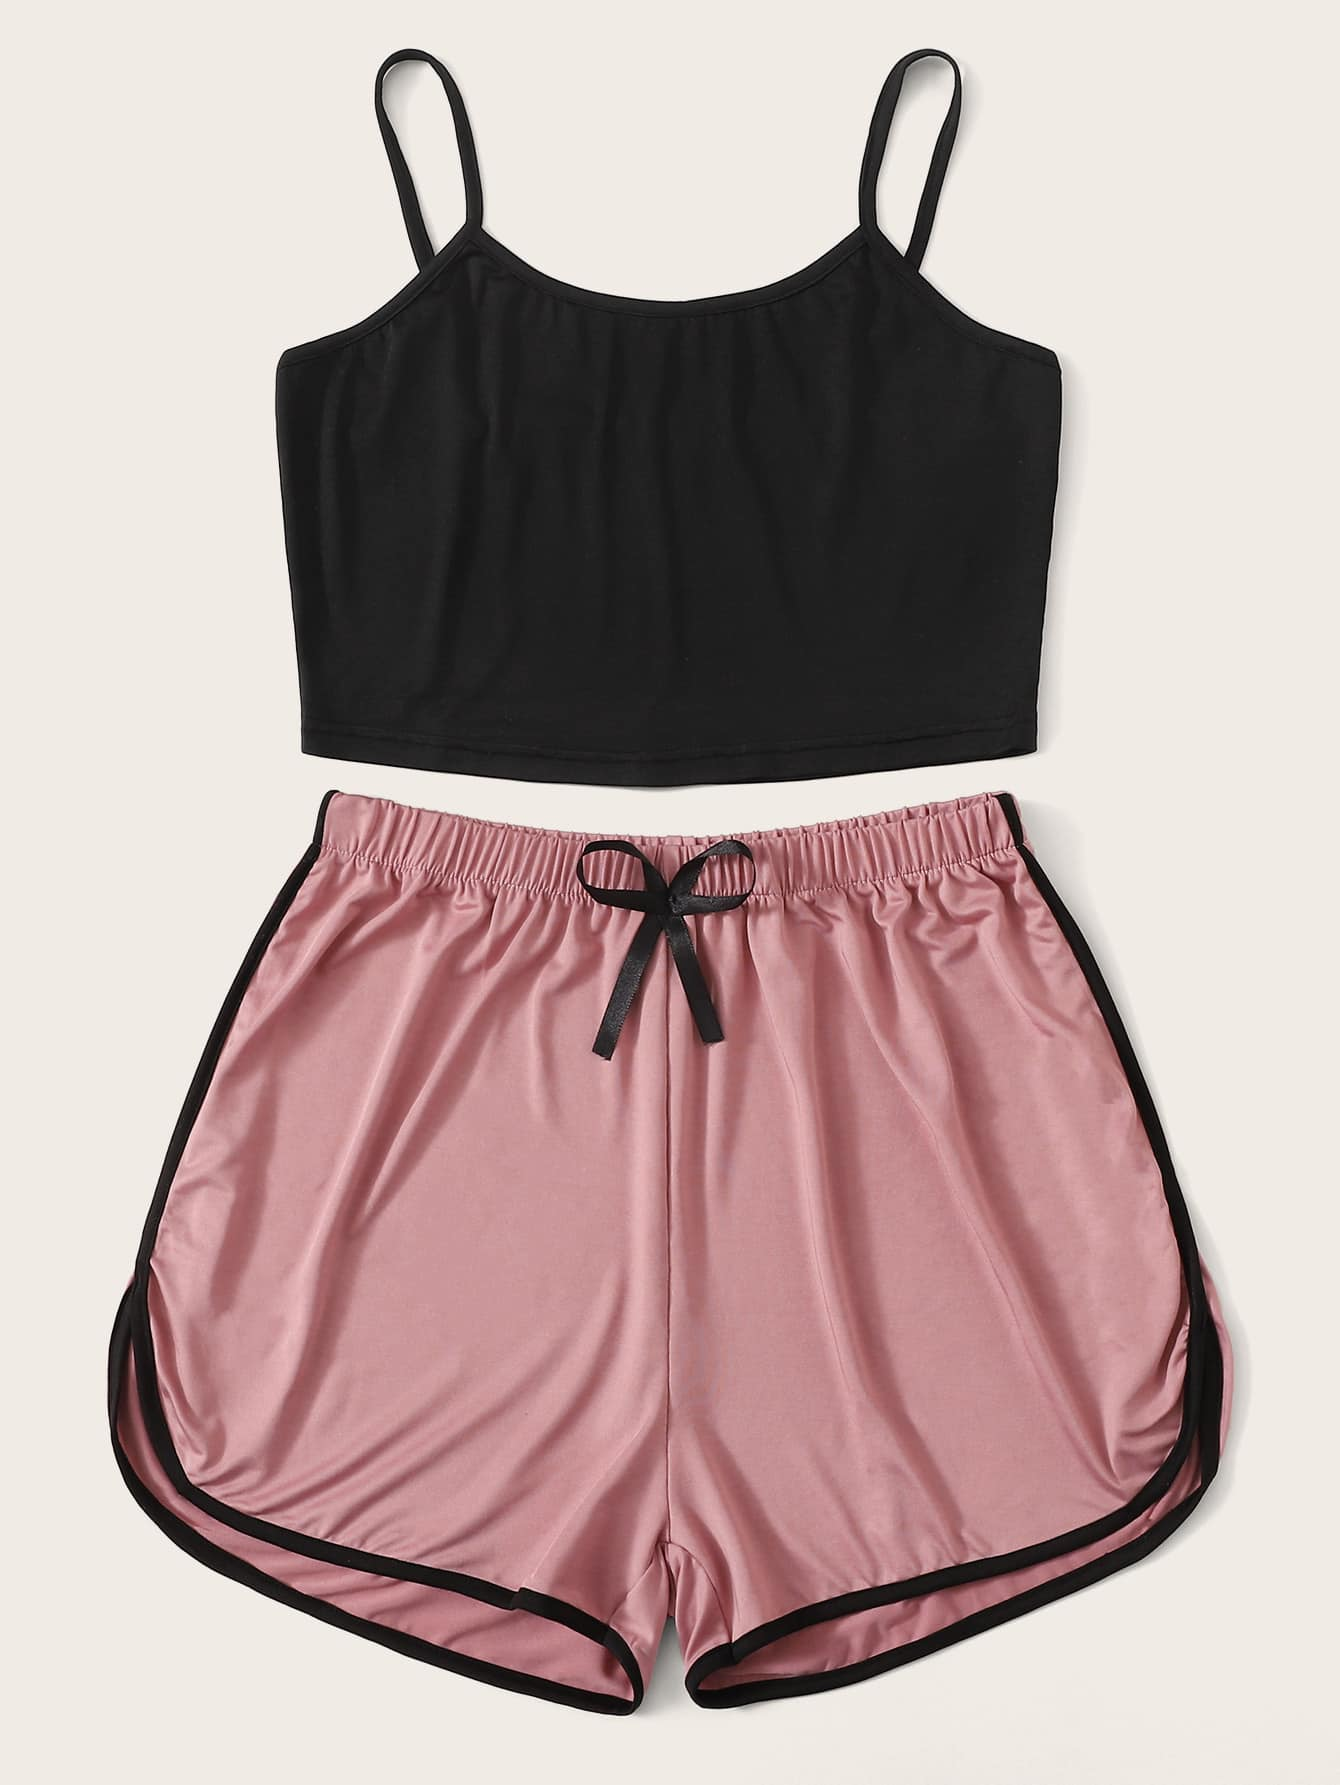 Cami Top With Contrast Binding Shorts PJ Set - FLJ CORPORATIONS